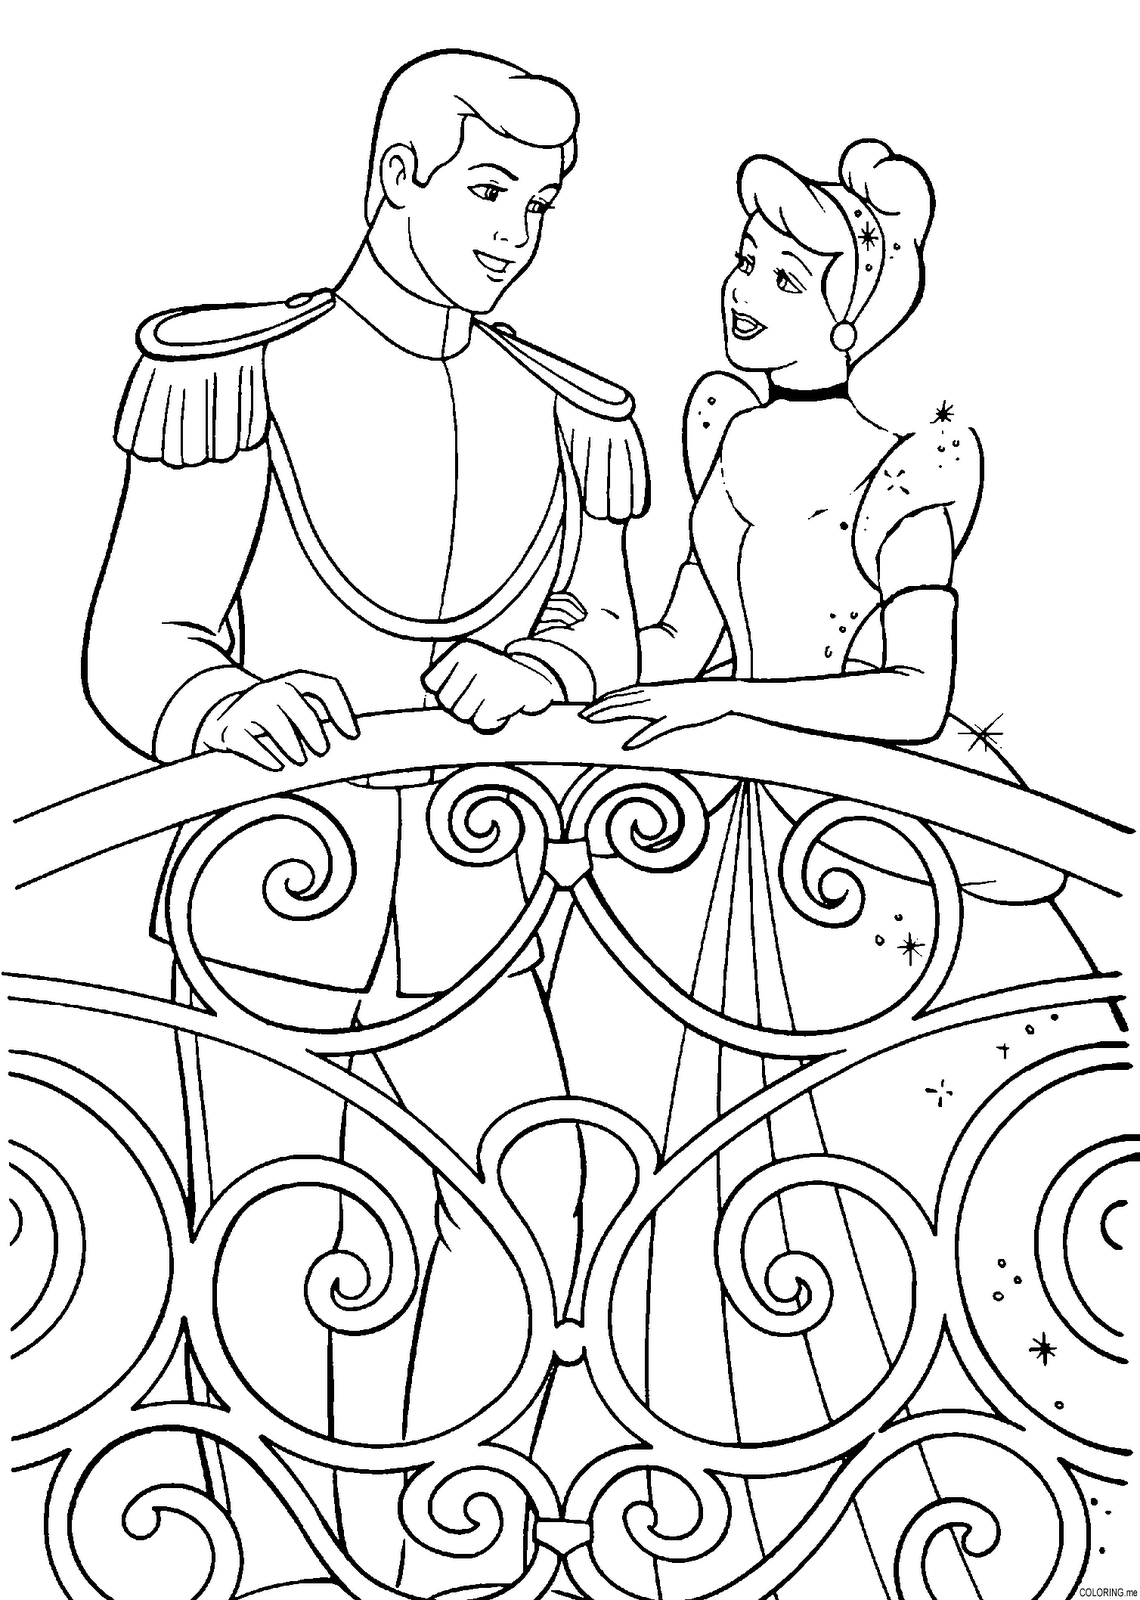 children online coloring pages | Kids Coloring Pages | Kids Online World Blog